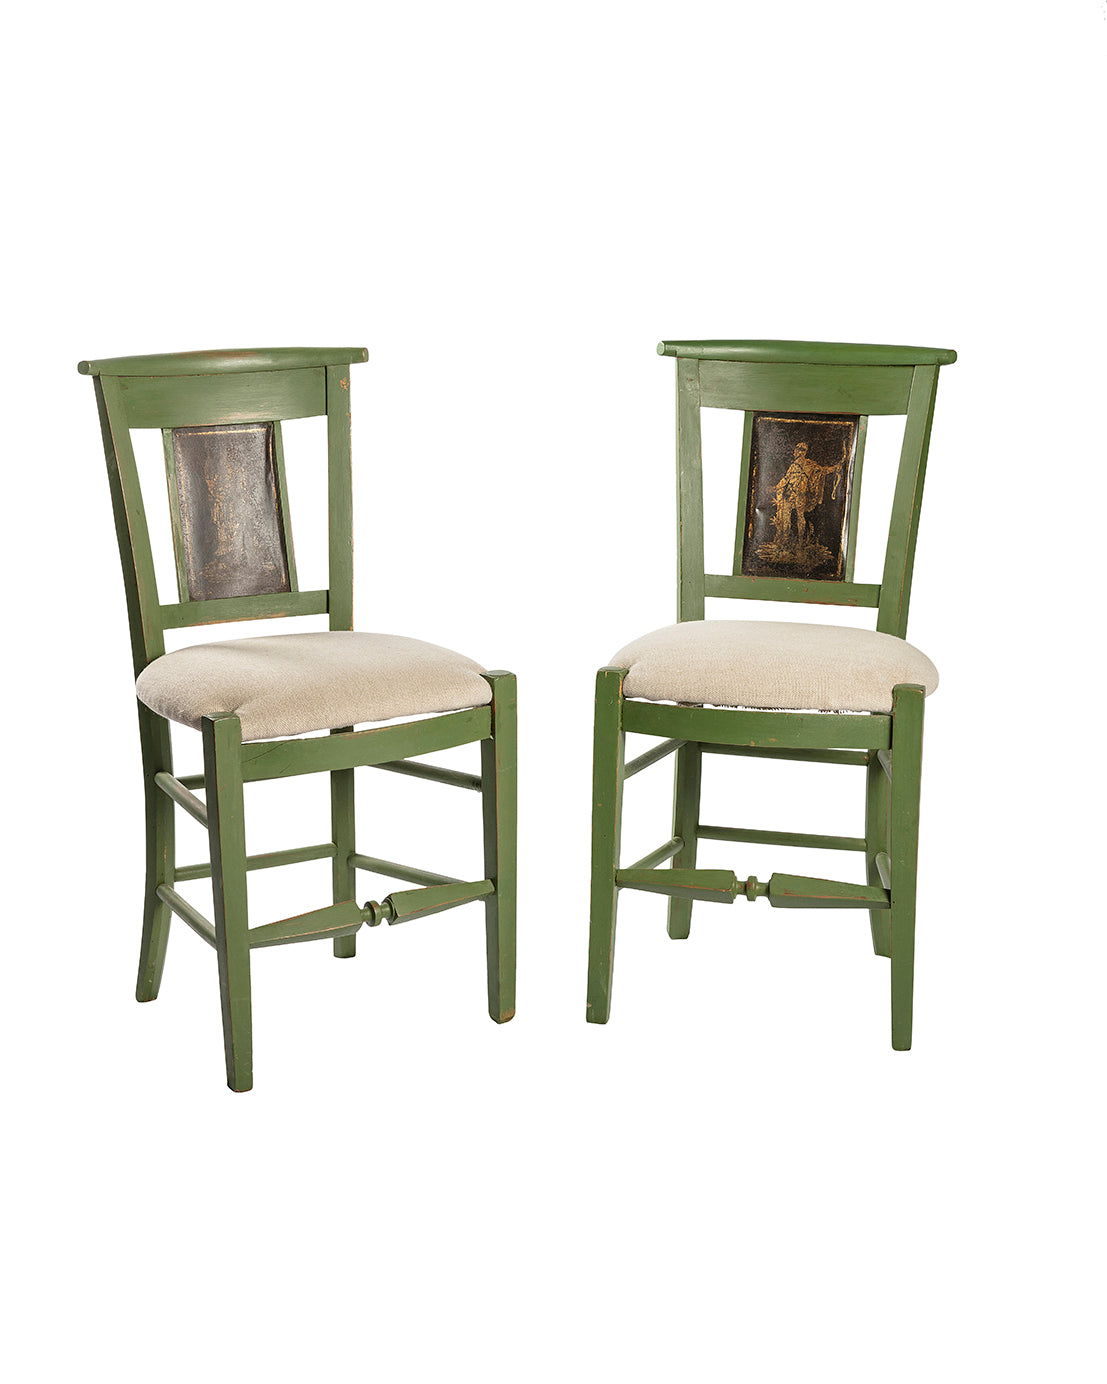 Set of six Empire style green chairs